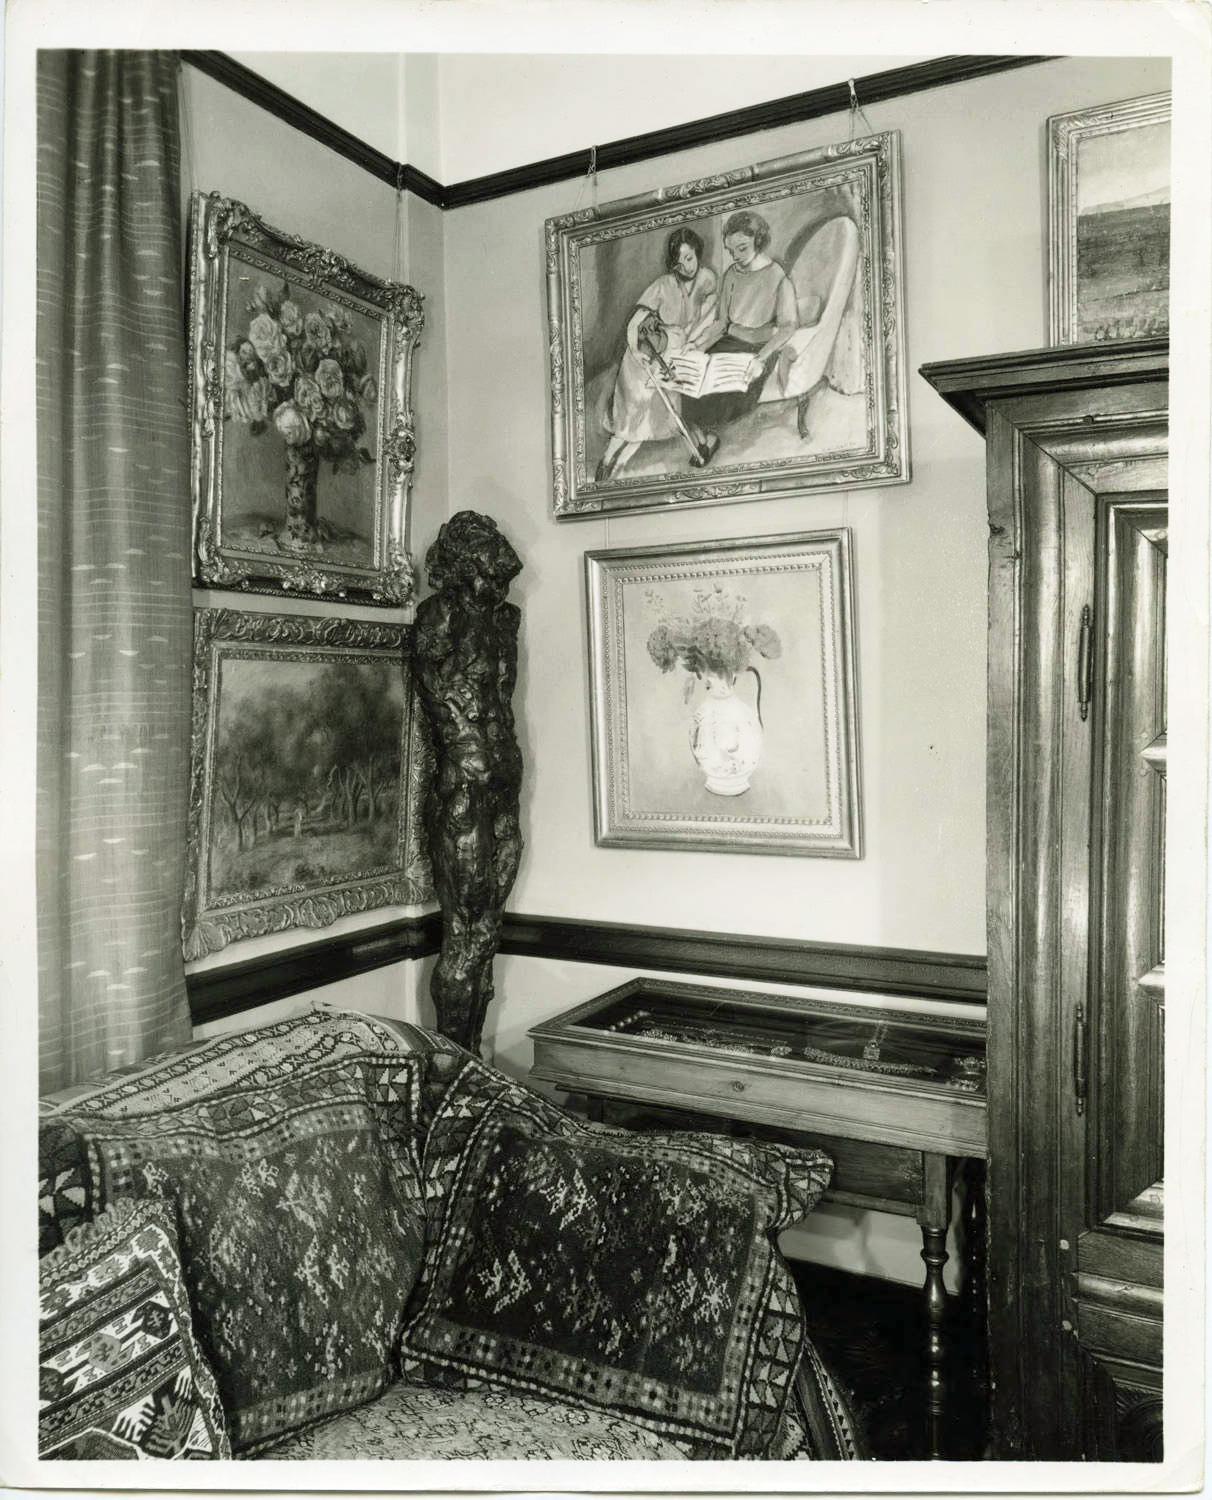 Claribel's apartment included tapestries, sculptures, drawers full of treasures, as well as Henri Matisse's     The Music Lesson: Two Women Seated on a Diva n    (1921) on the upper right.  Historic photos on this page used with permission of the Baltimore Museum of Art Claribel Cone's apartment (8B), Marlborough Apartments, Baltimore, Maryland, Circa 1926-1949. Claribel and Etta Cone Papers, Archives and Manuscripts Collections, The Baltimore Museum of Art. CECHOMES.15